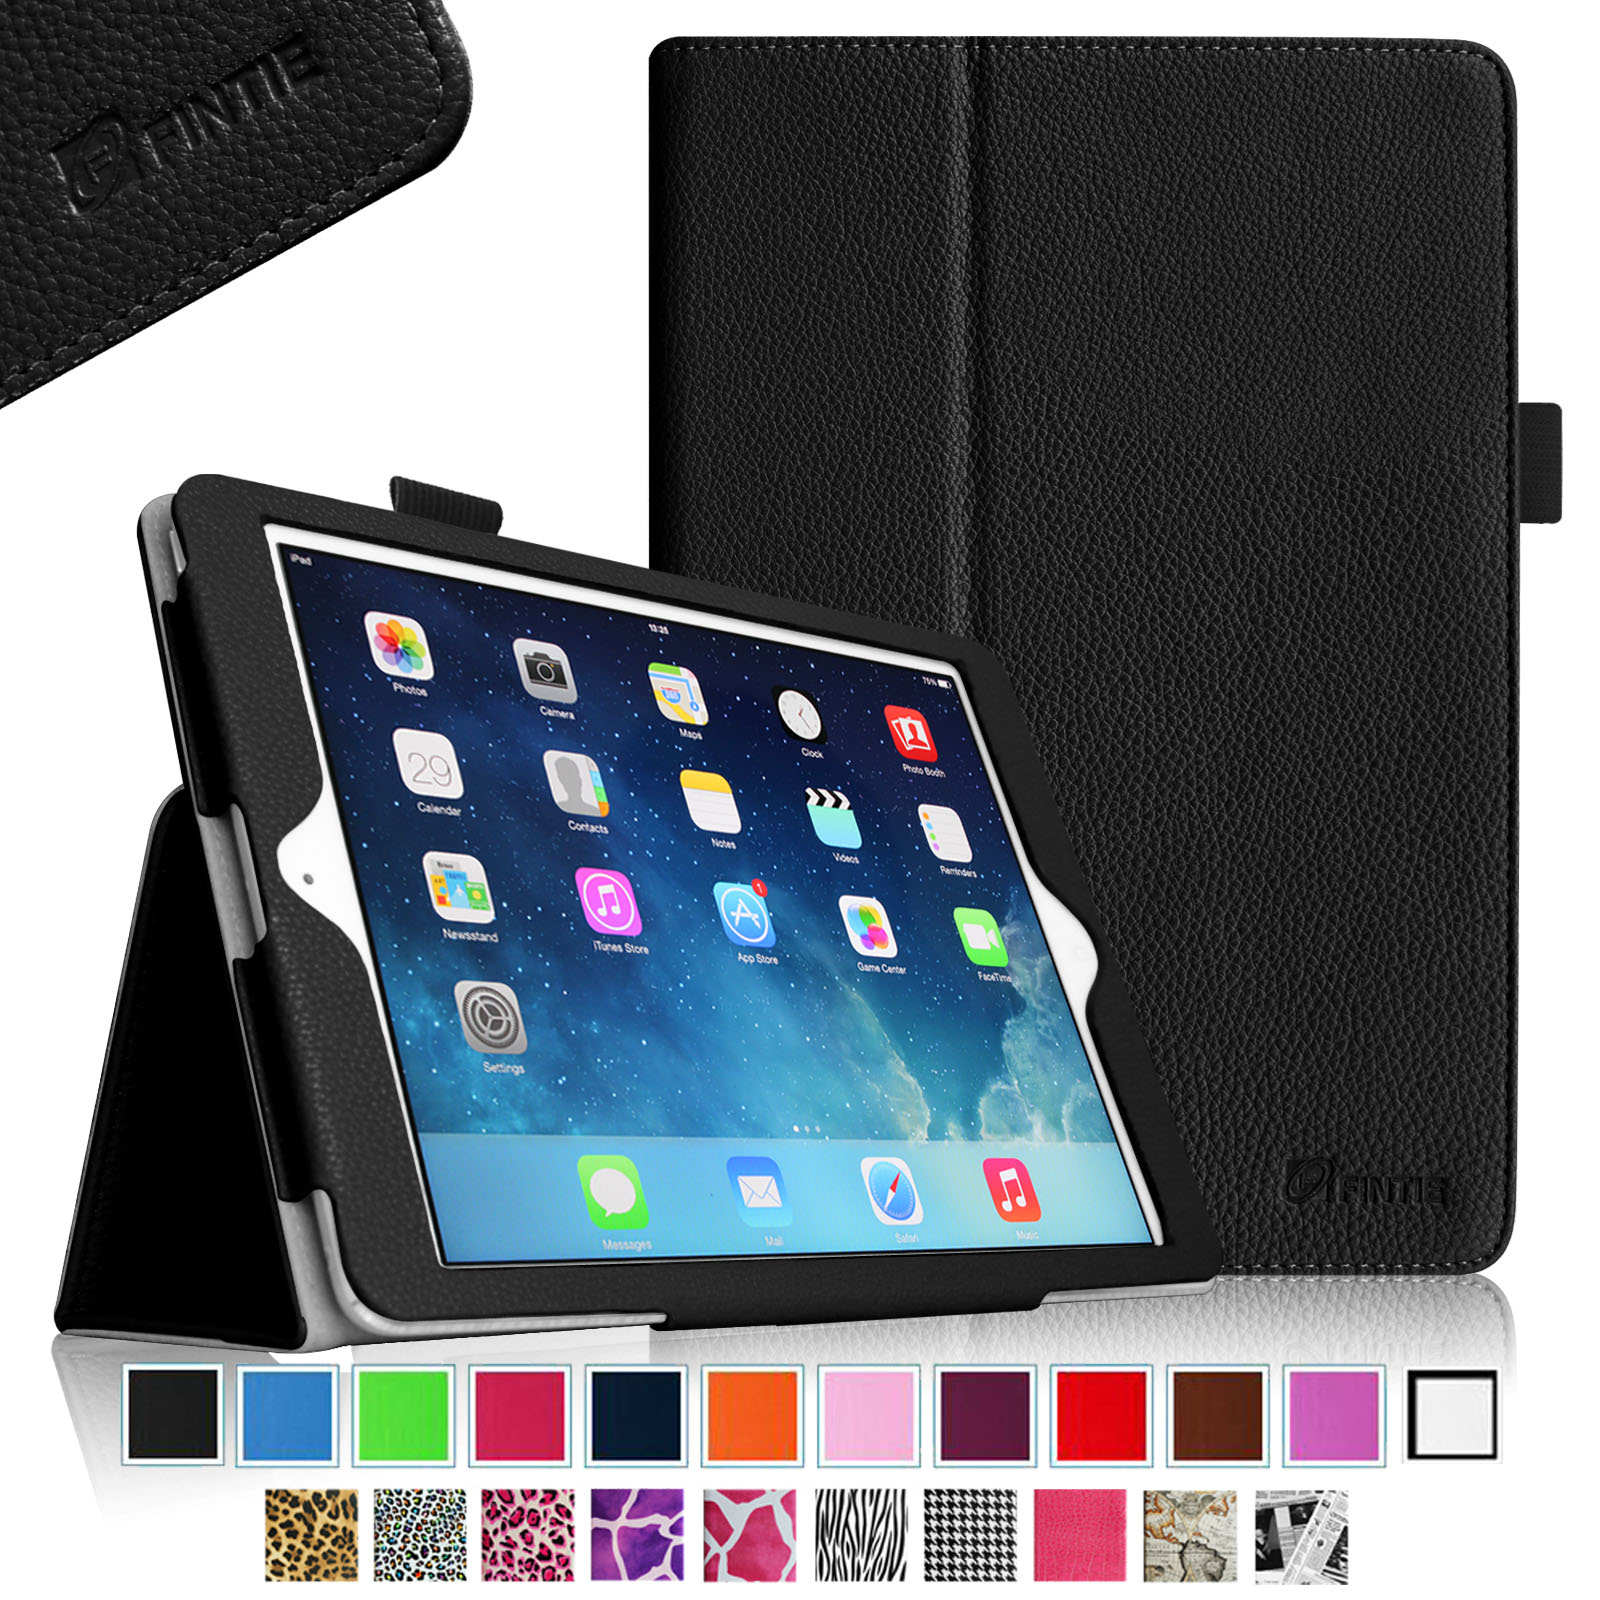 Fintie iPad Air (2013) Case - Premium PU Leather Folio Smart Cover with Auto Sleep / Wake Feature, Black